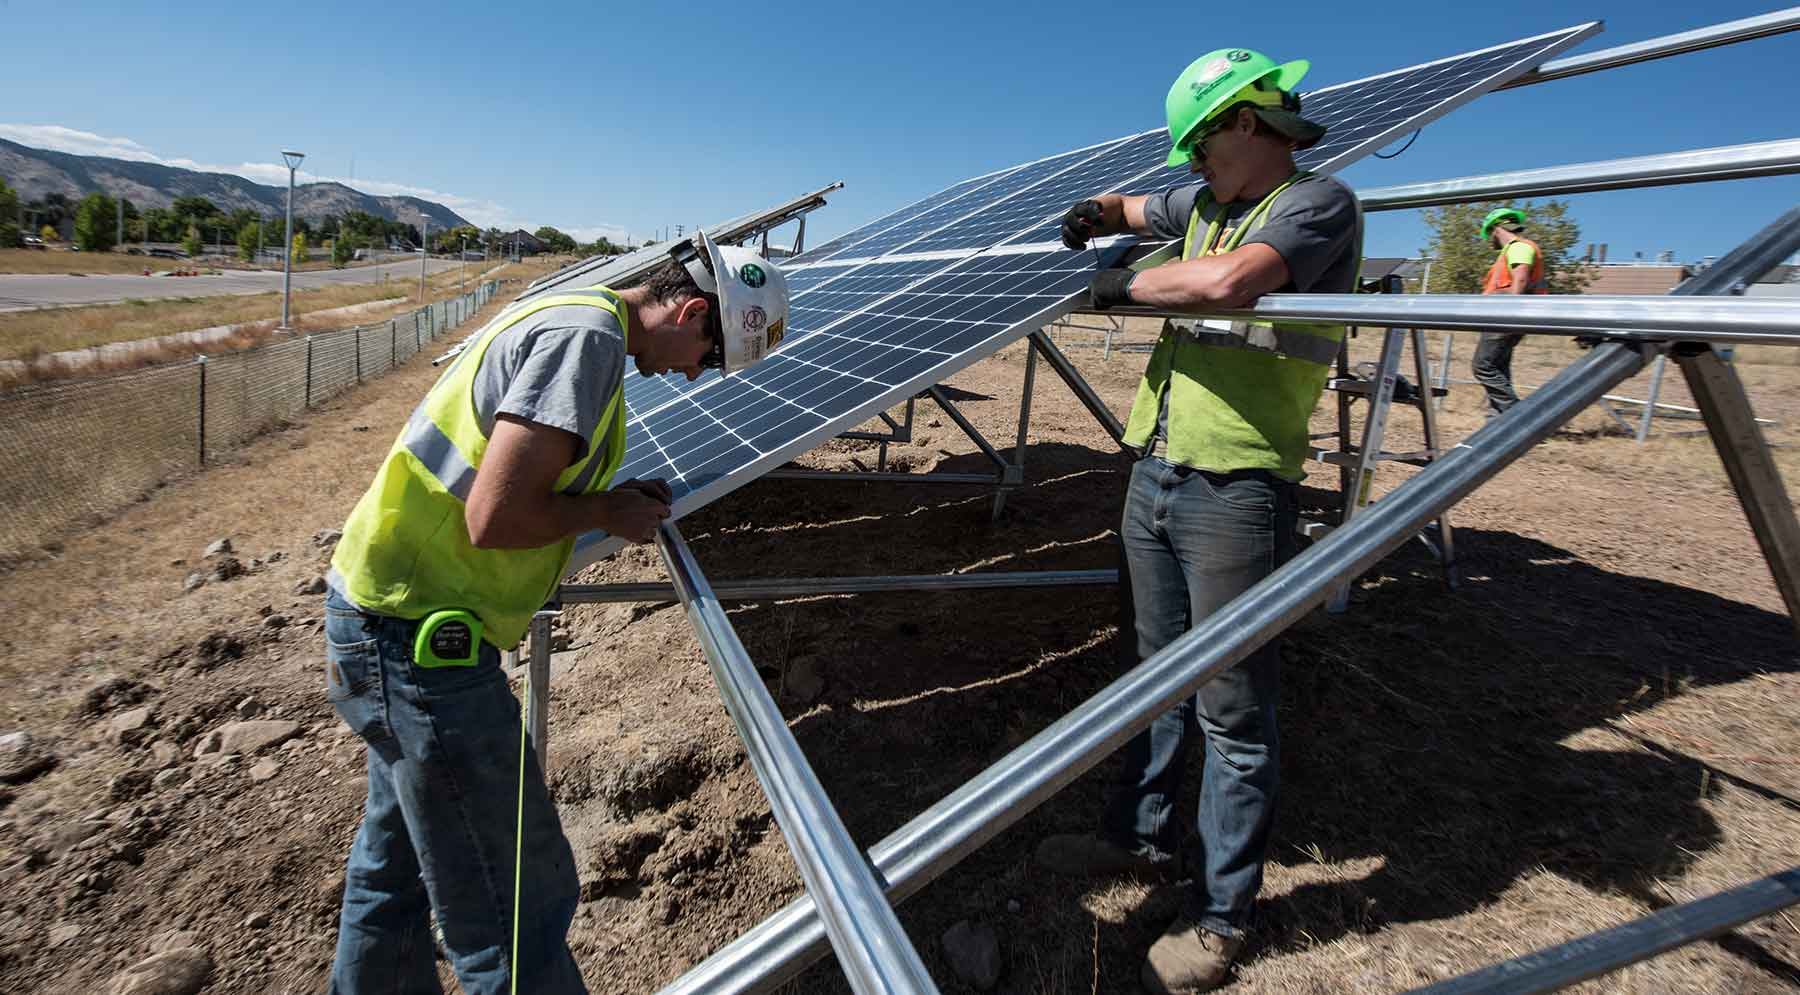 Workers install PV modules at NREL's new solar array field.